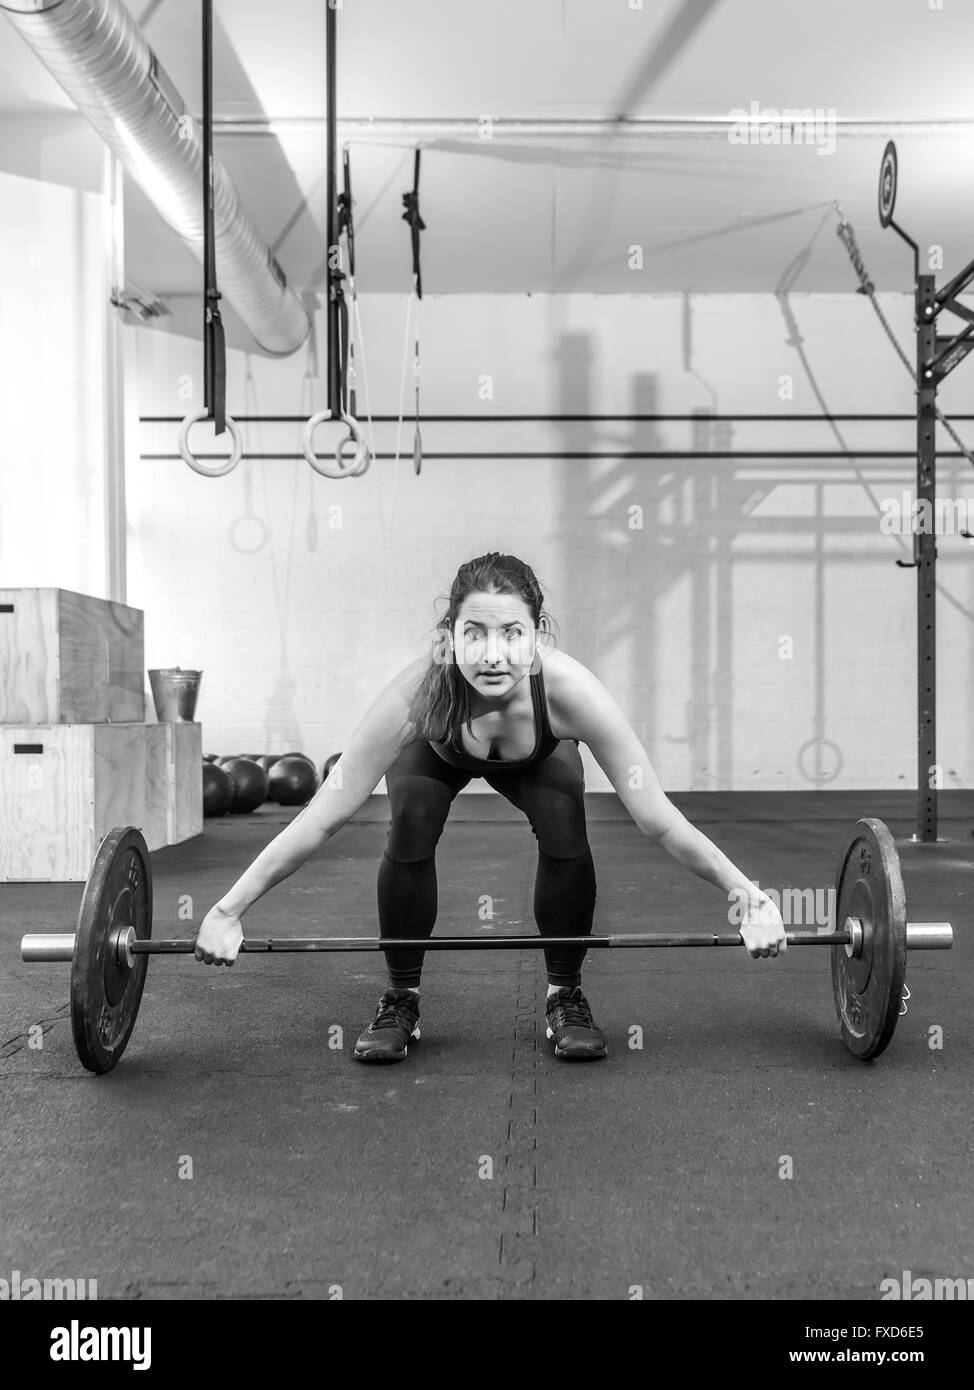 Photo of a young woman at a crossfit gym lifting a barbell. Stock Photo